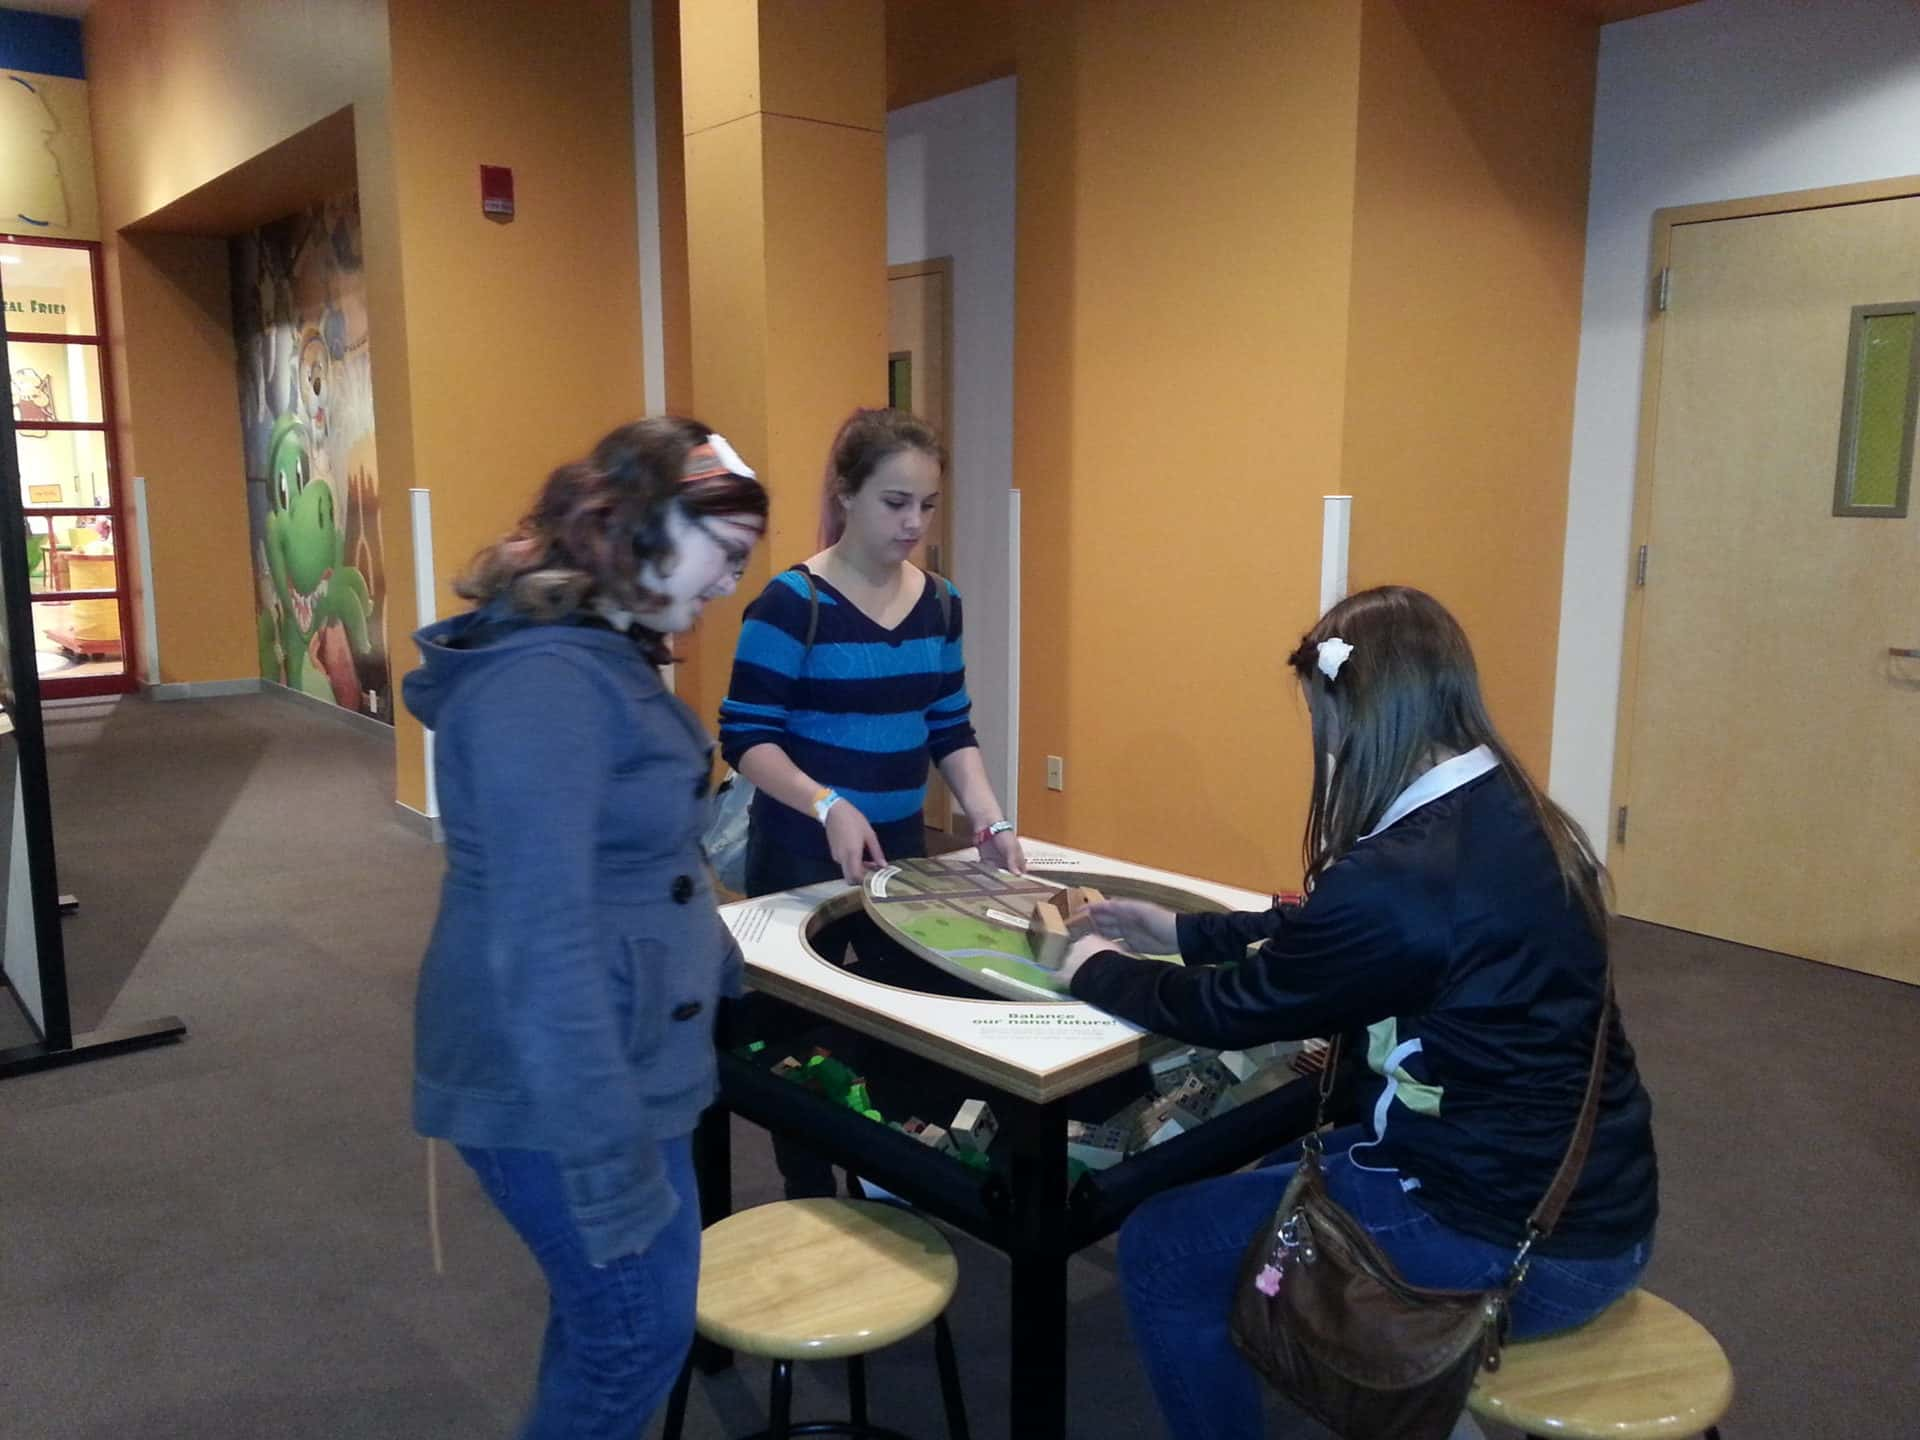 St Louis Science Center - tilting table